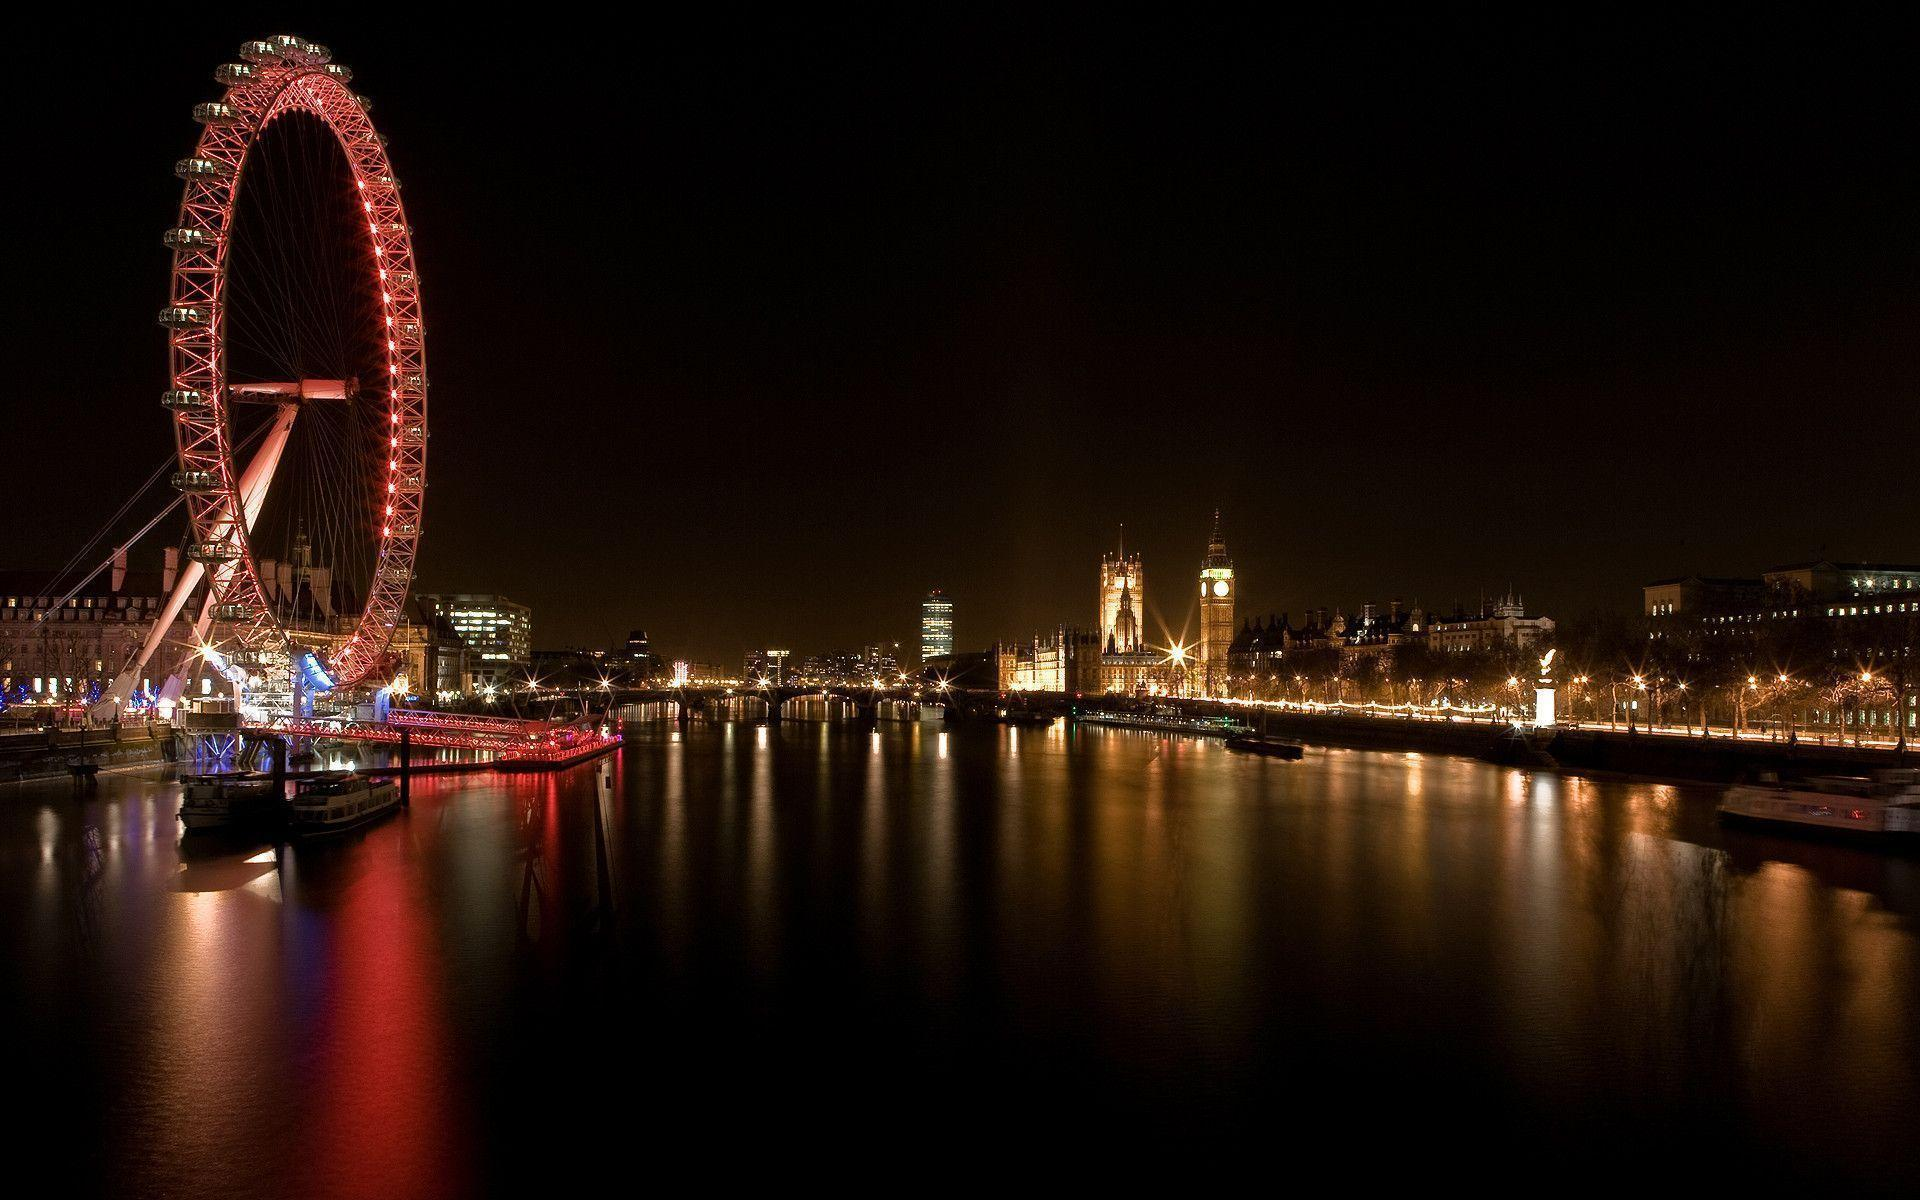 London, England / Places / Desktop HD, iPhone, iPad Wallpapers